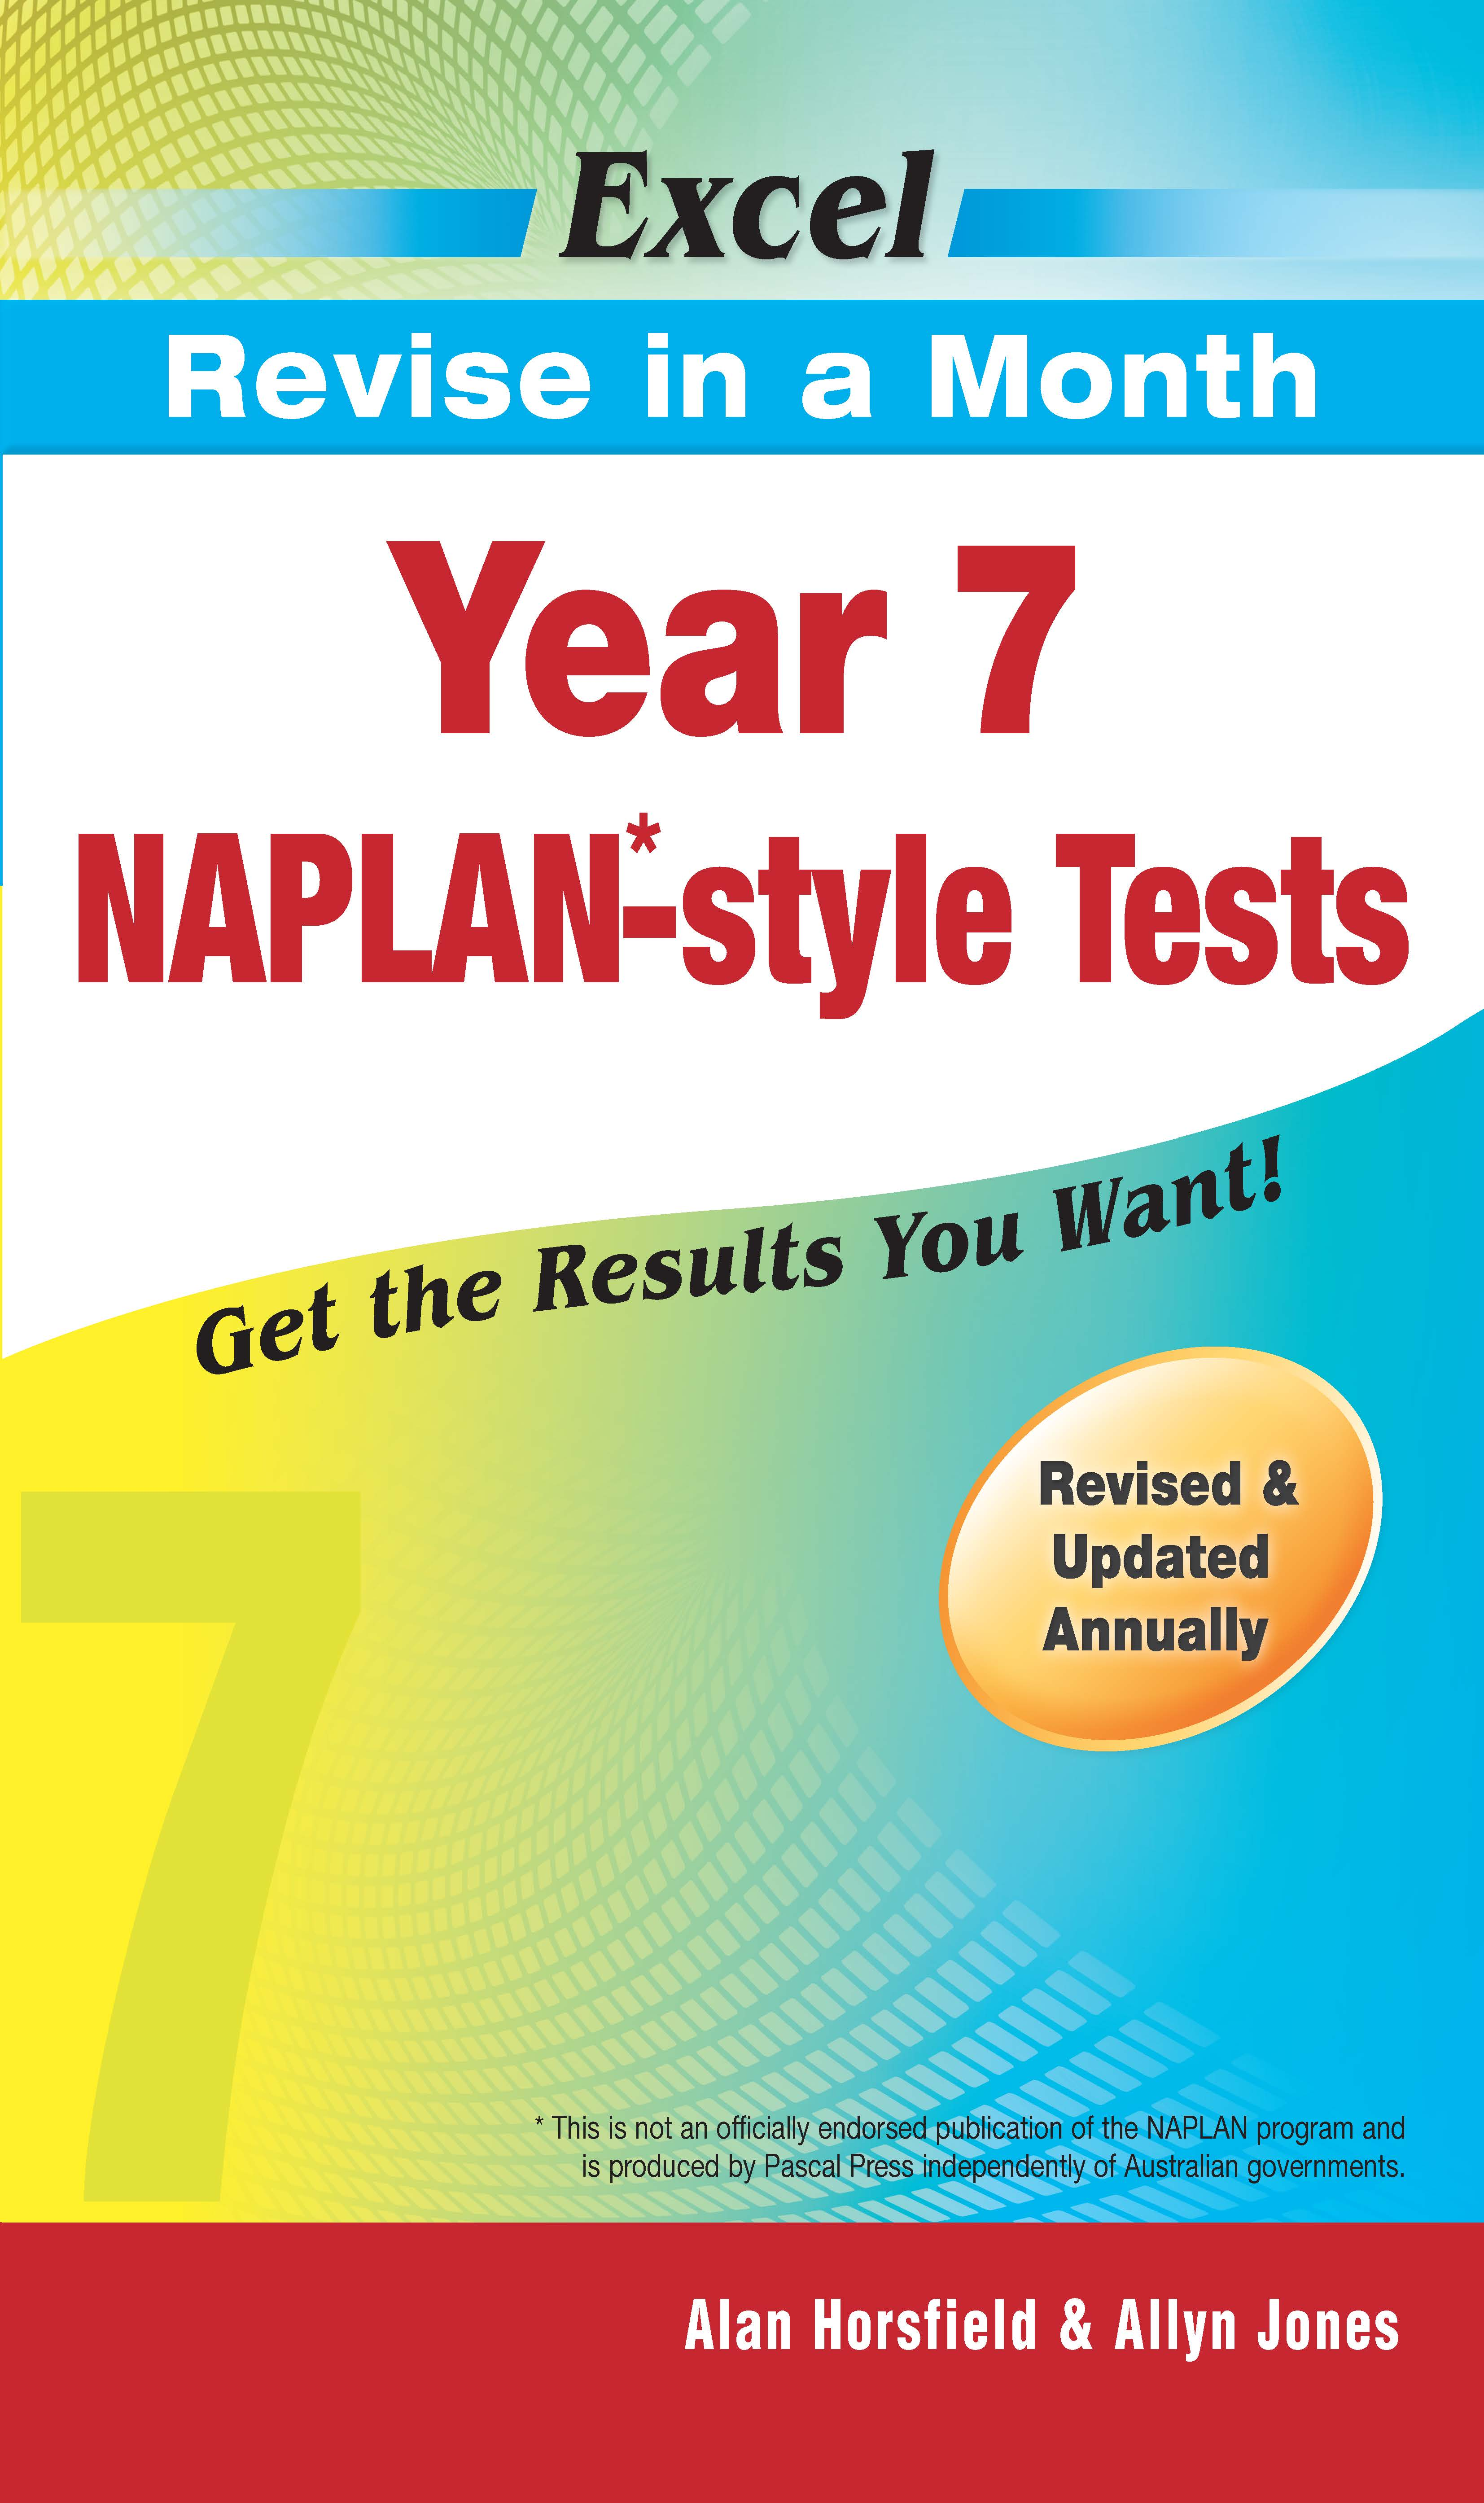 Excel Revise in a Month NAPLAN*-style Tests Year 7